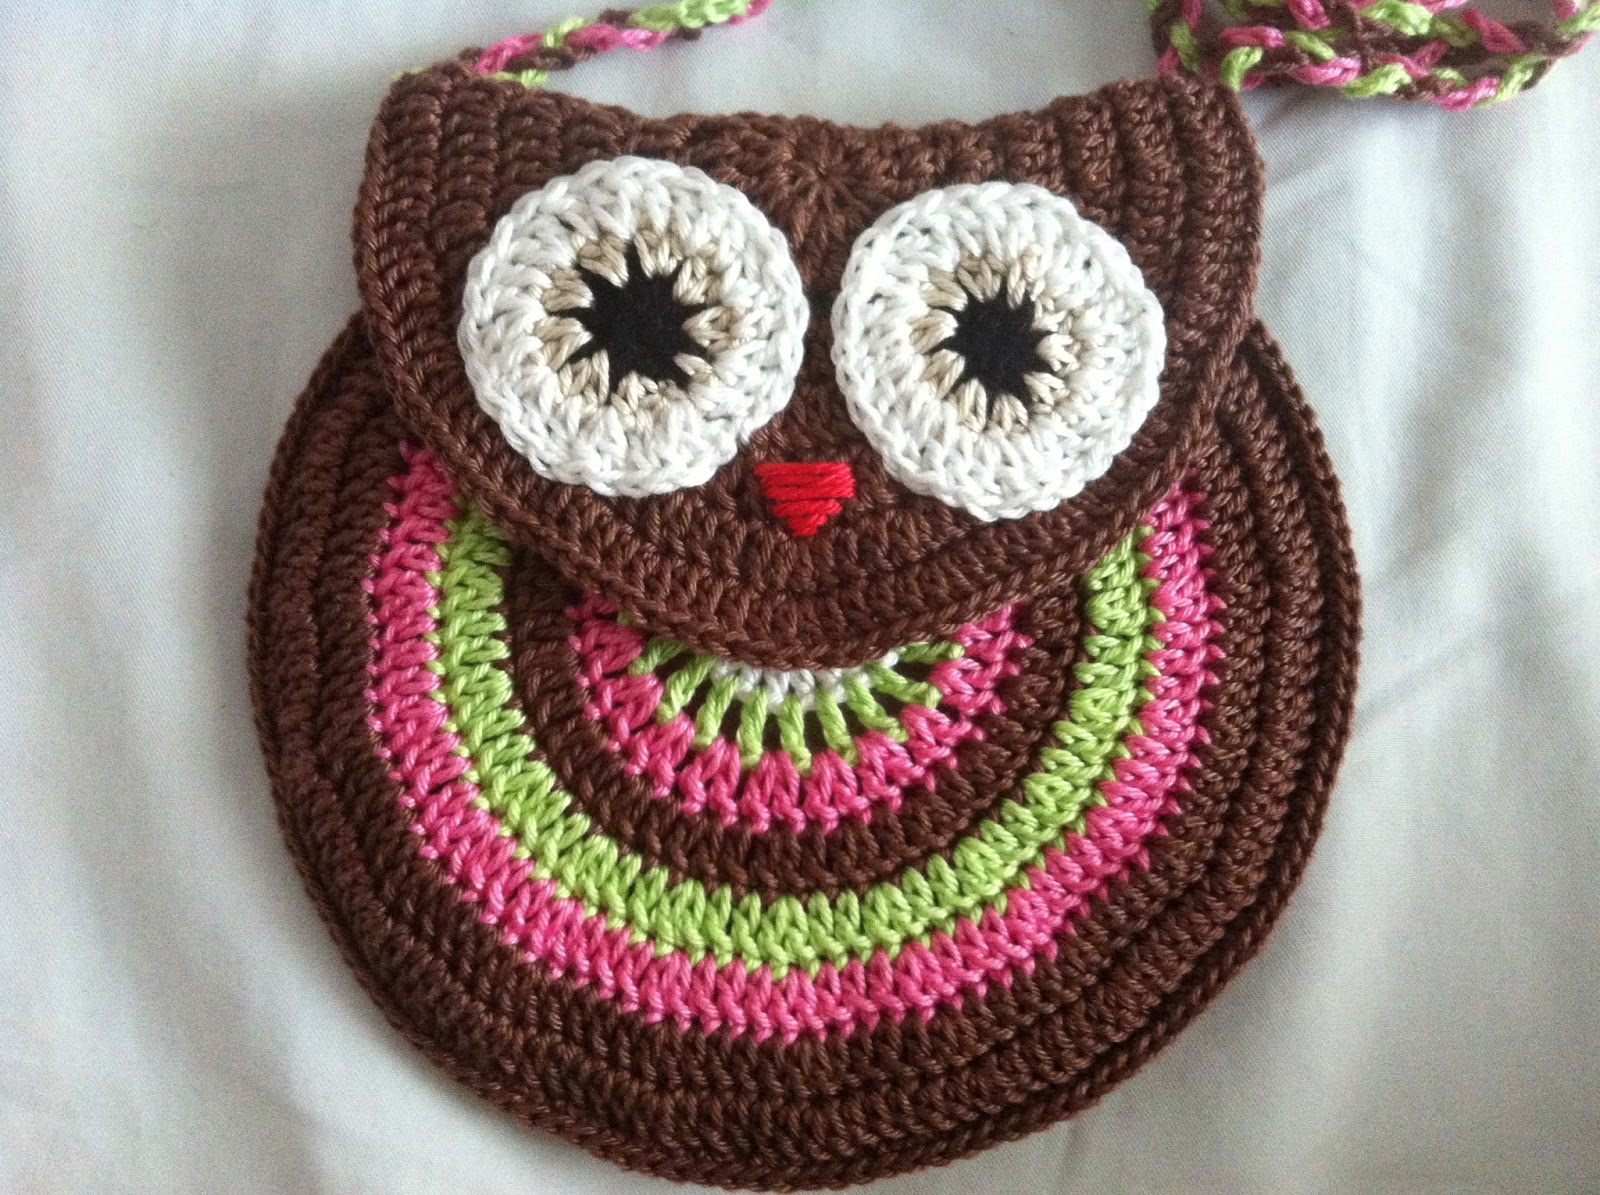 Free Purse Patterns : ... the internet looking for a nice purse or small bag my daughter in my